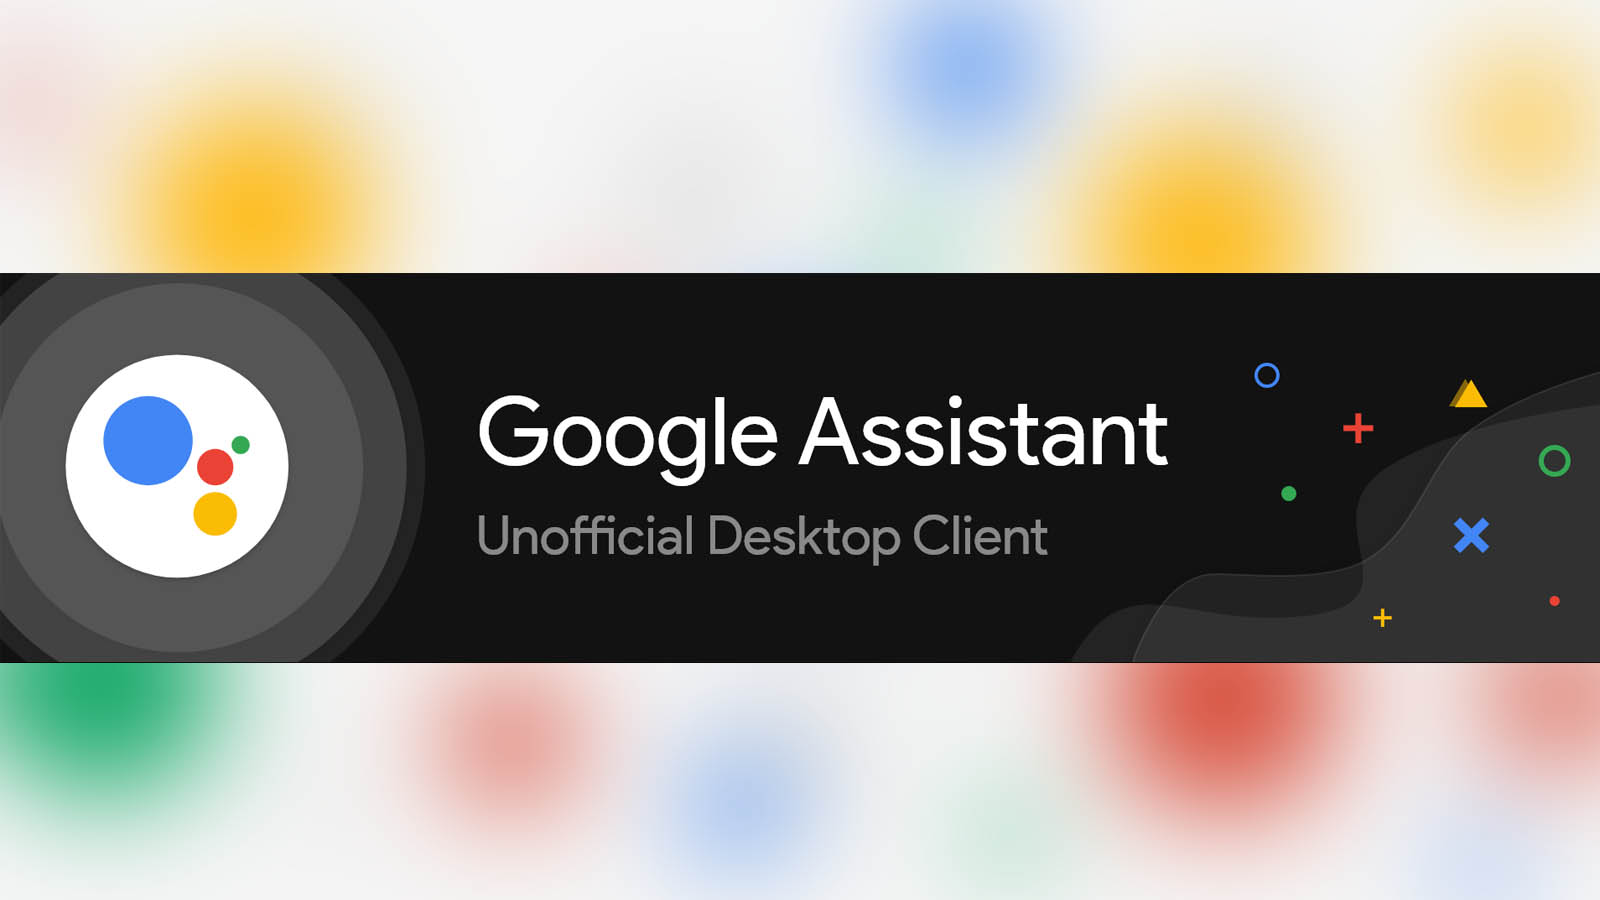 This unofficial client brings Google Assistant to Windows and Mac desktops